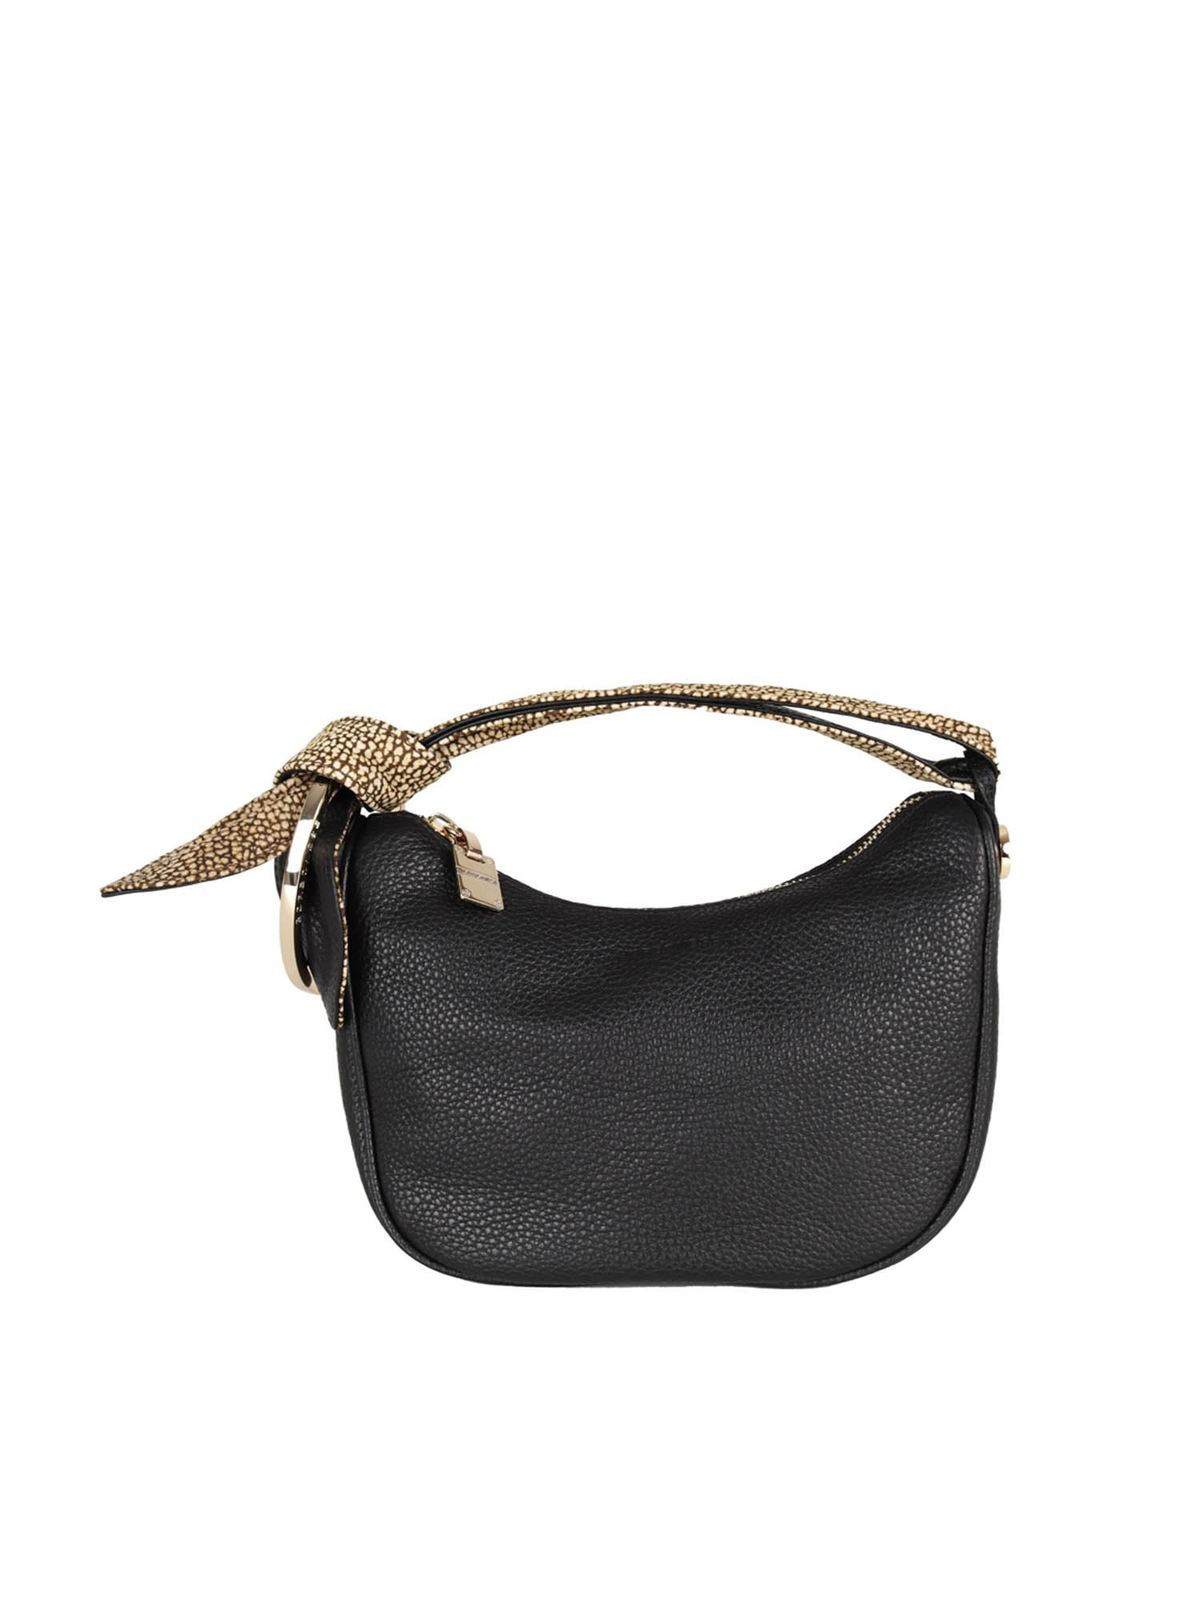 Borbonese LUNA PETITE BAG IN BLACK